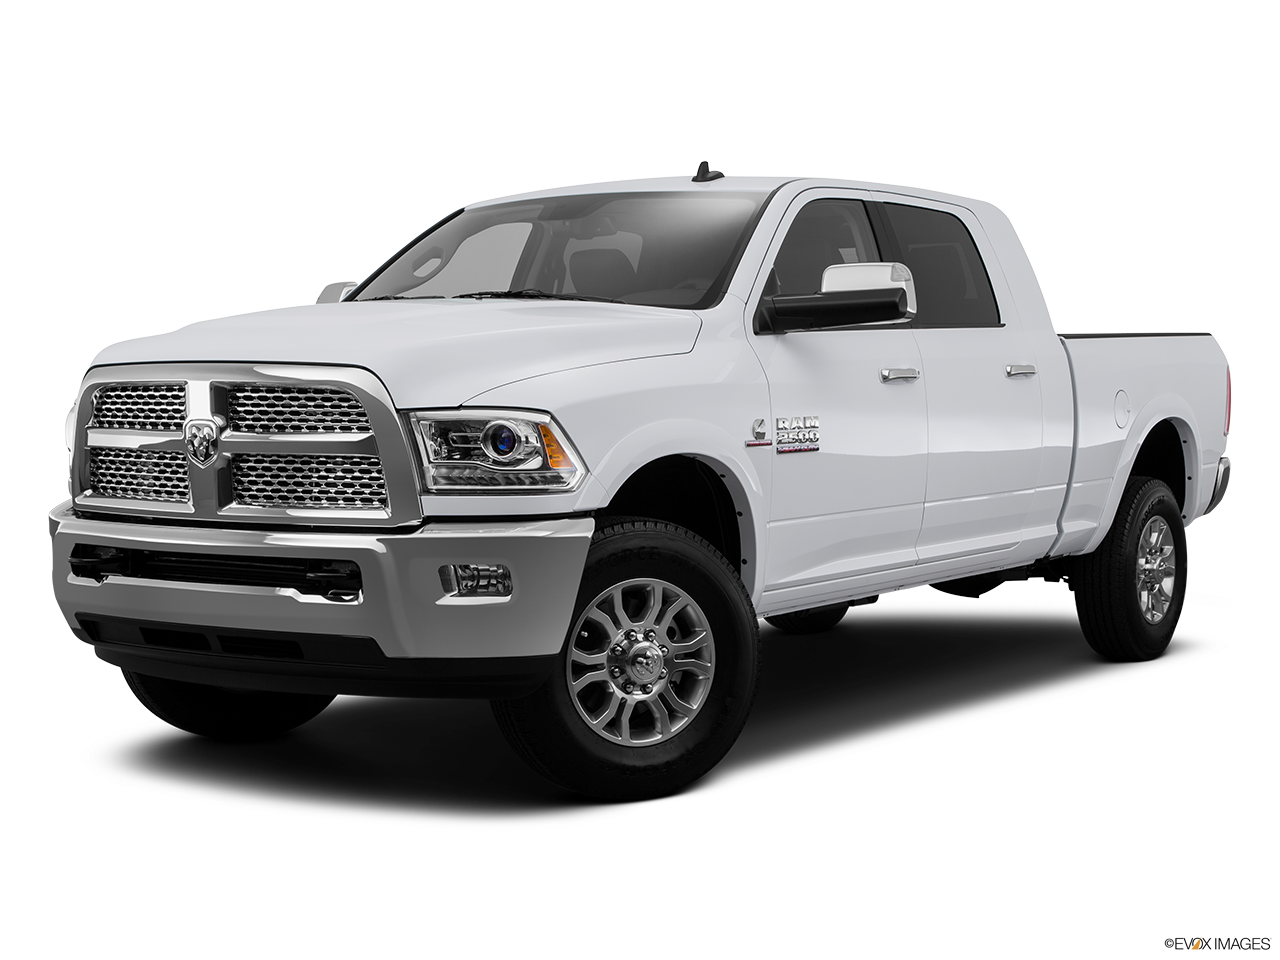 Dodge Dealership San Diego >> 2015 RAM 2500 dealer serving San Diego | Carl Burger Dodge ...